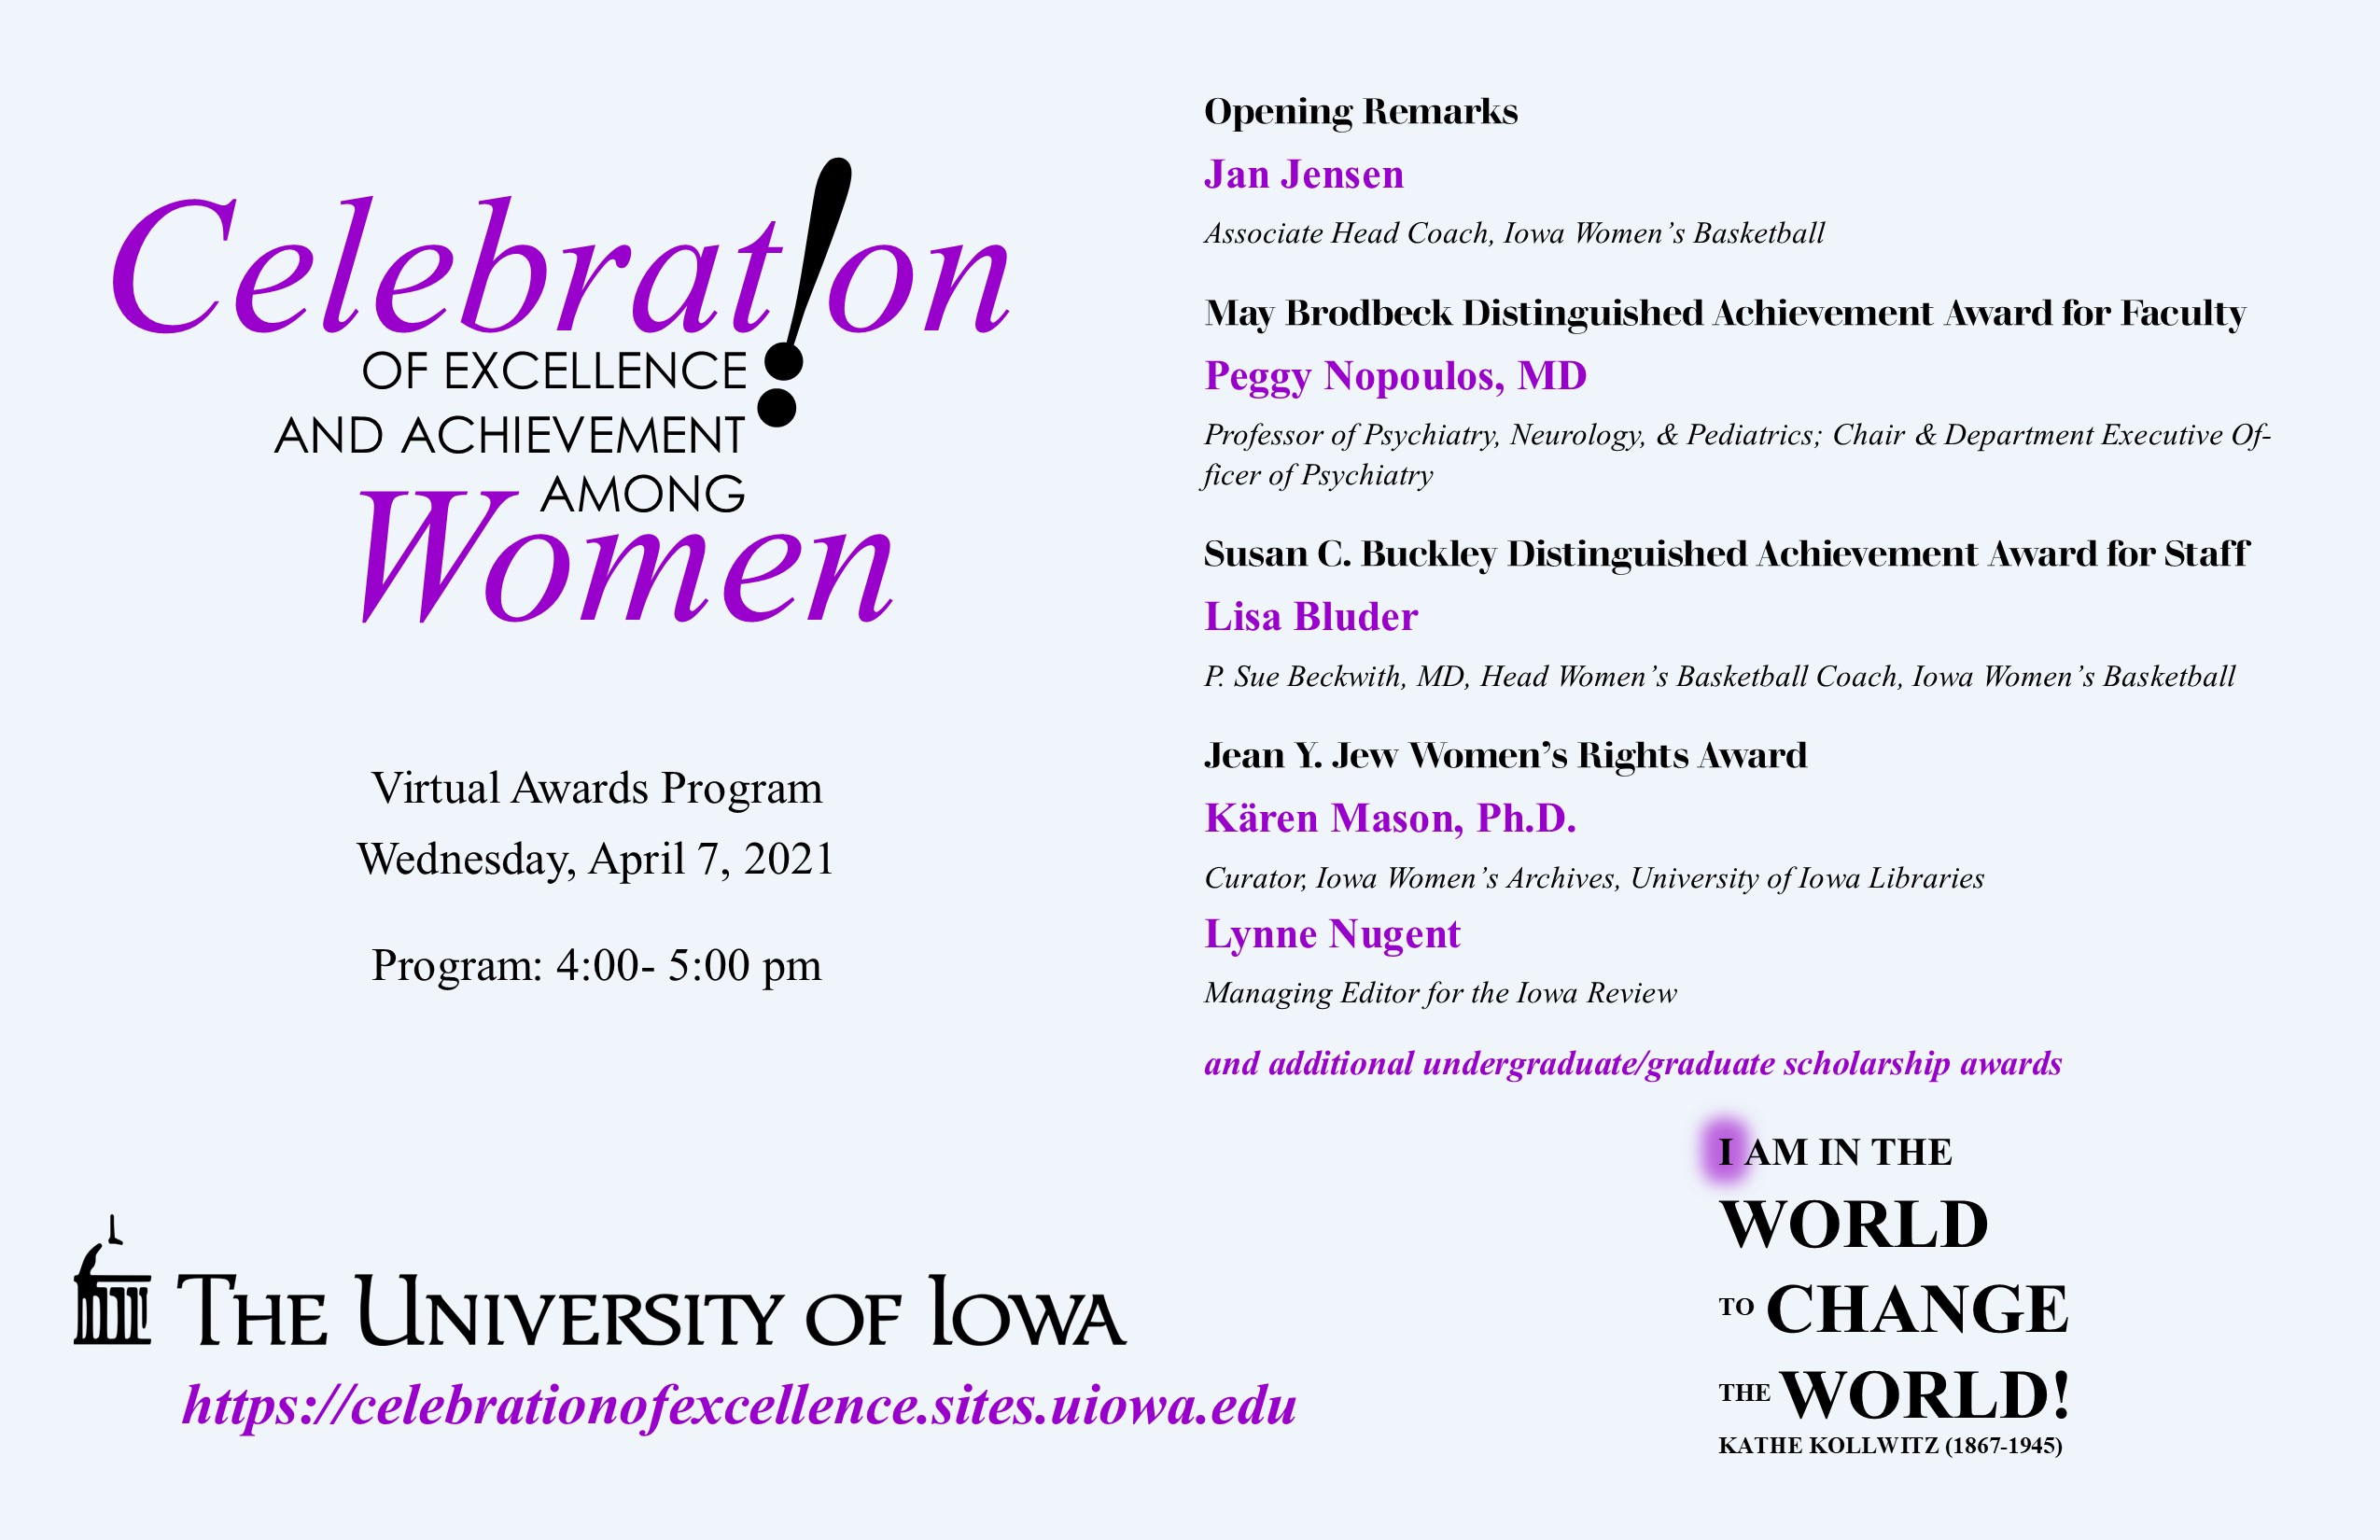 Annual Celebration of Excellence and Achievement Among Women Celebration (CEAAW)